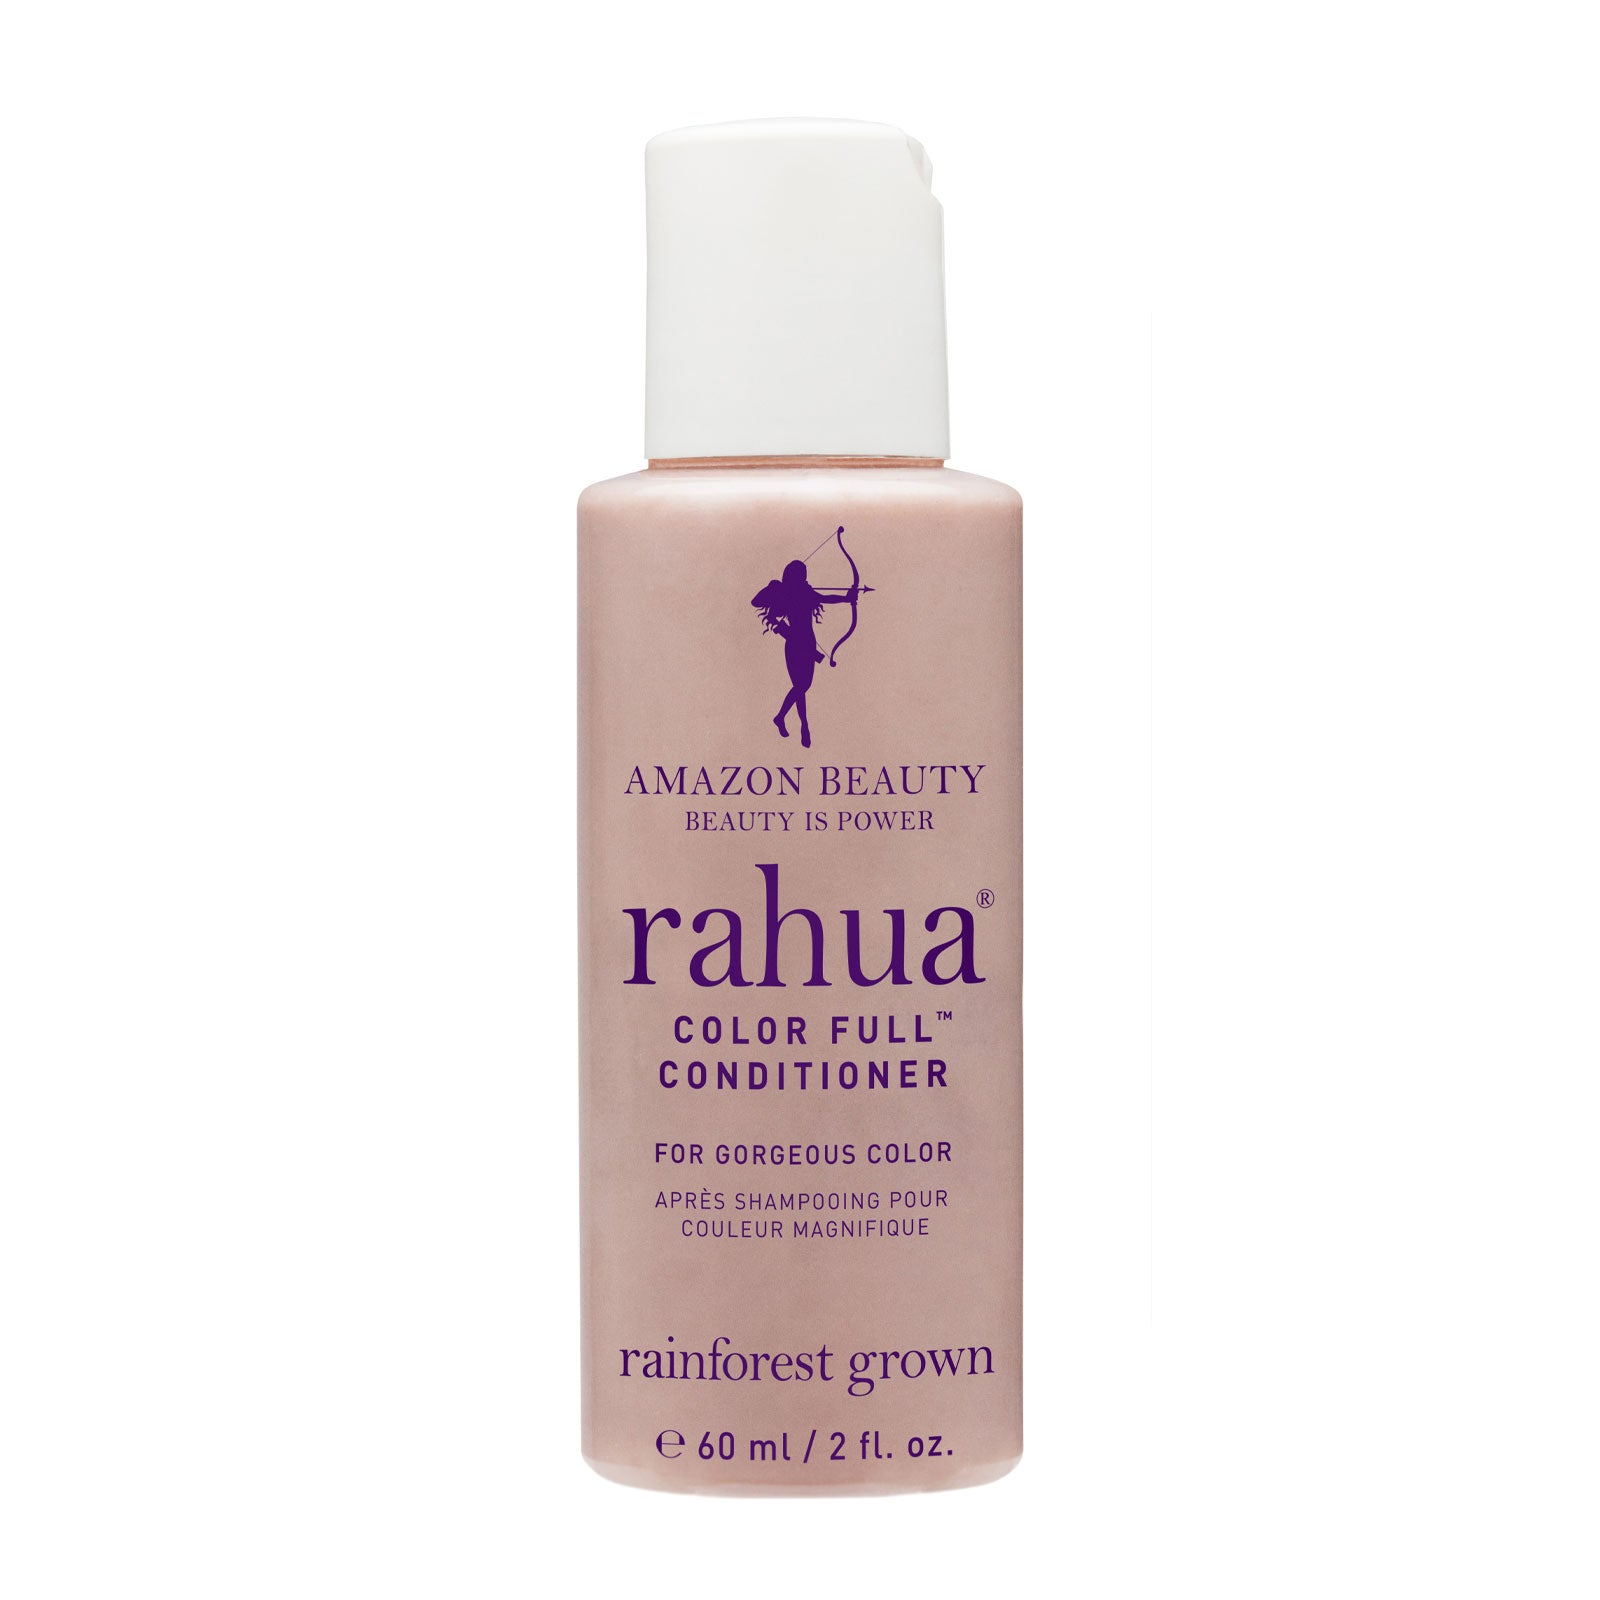 Rahua Color Full™ Conditioner Travel Size 60ml